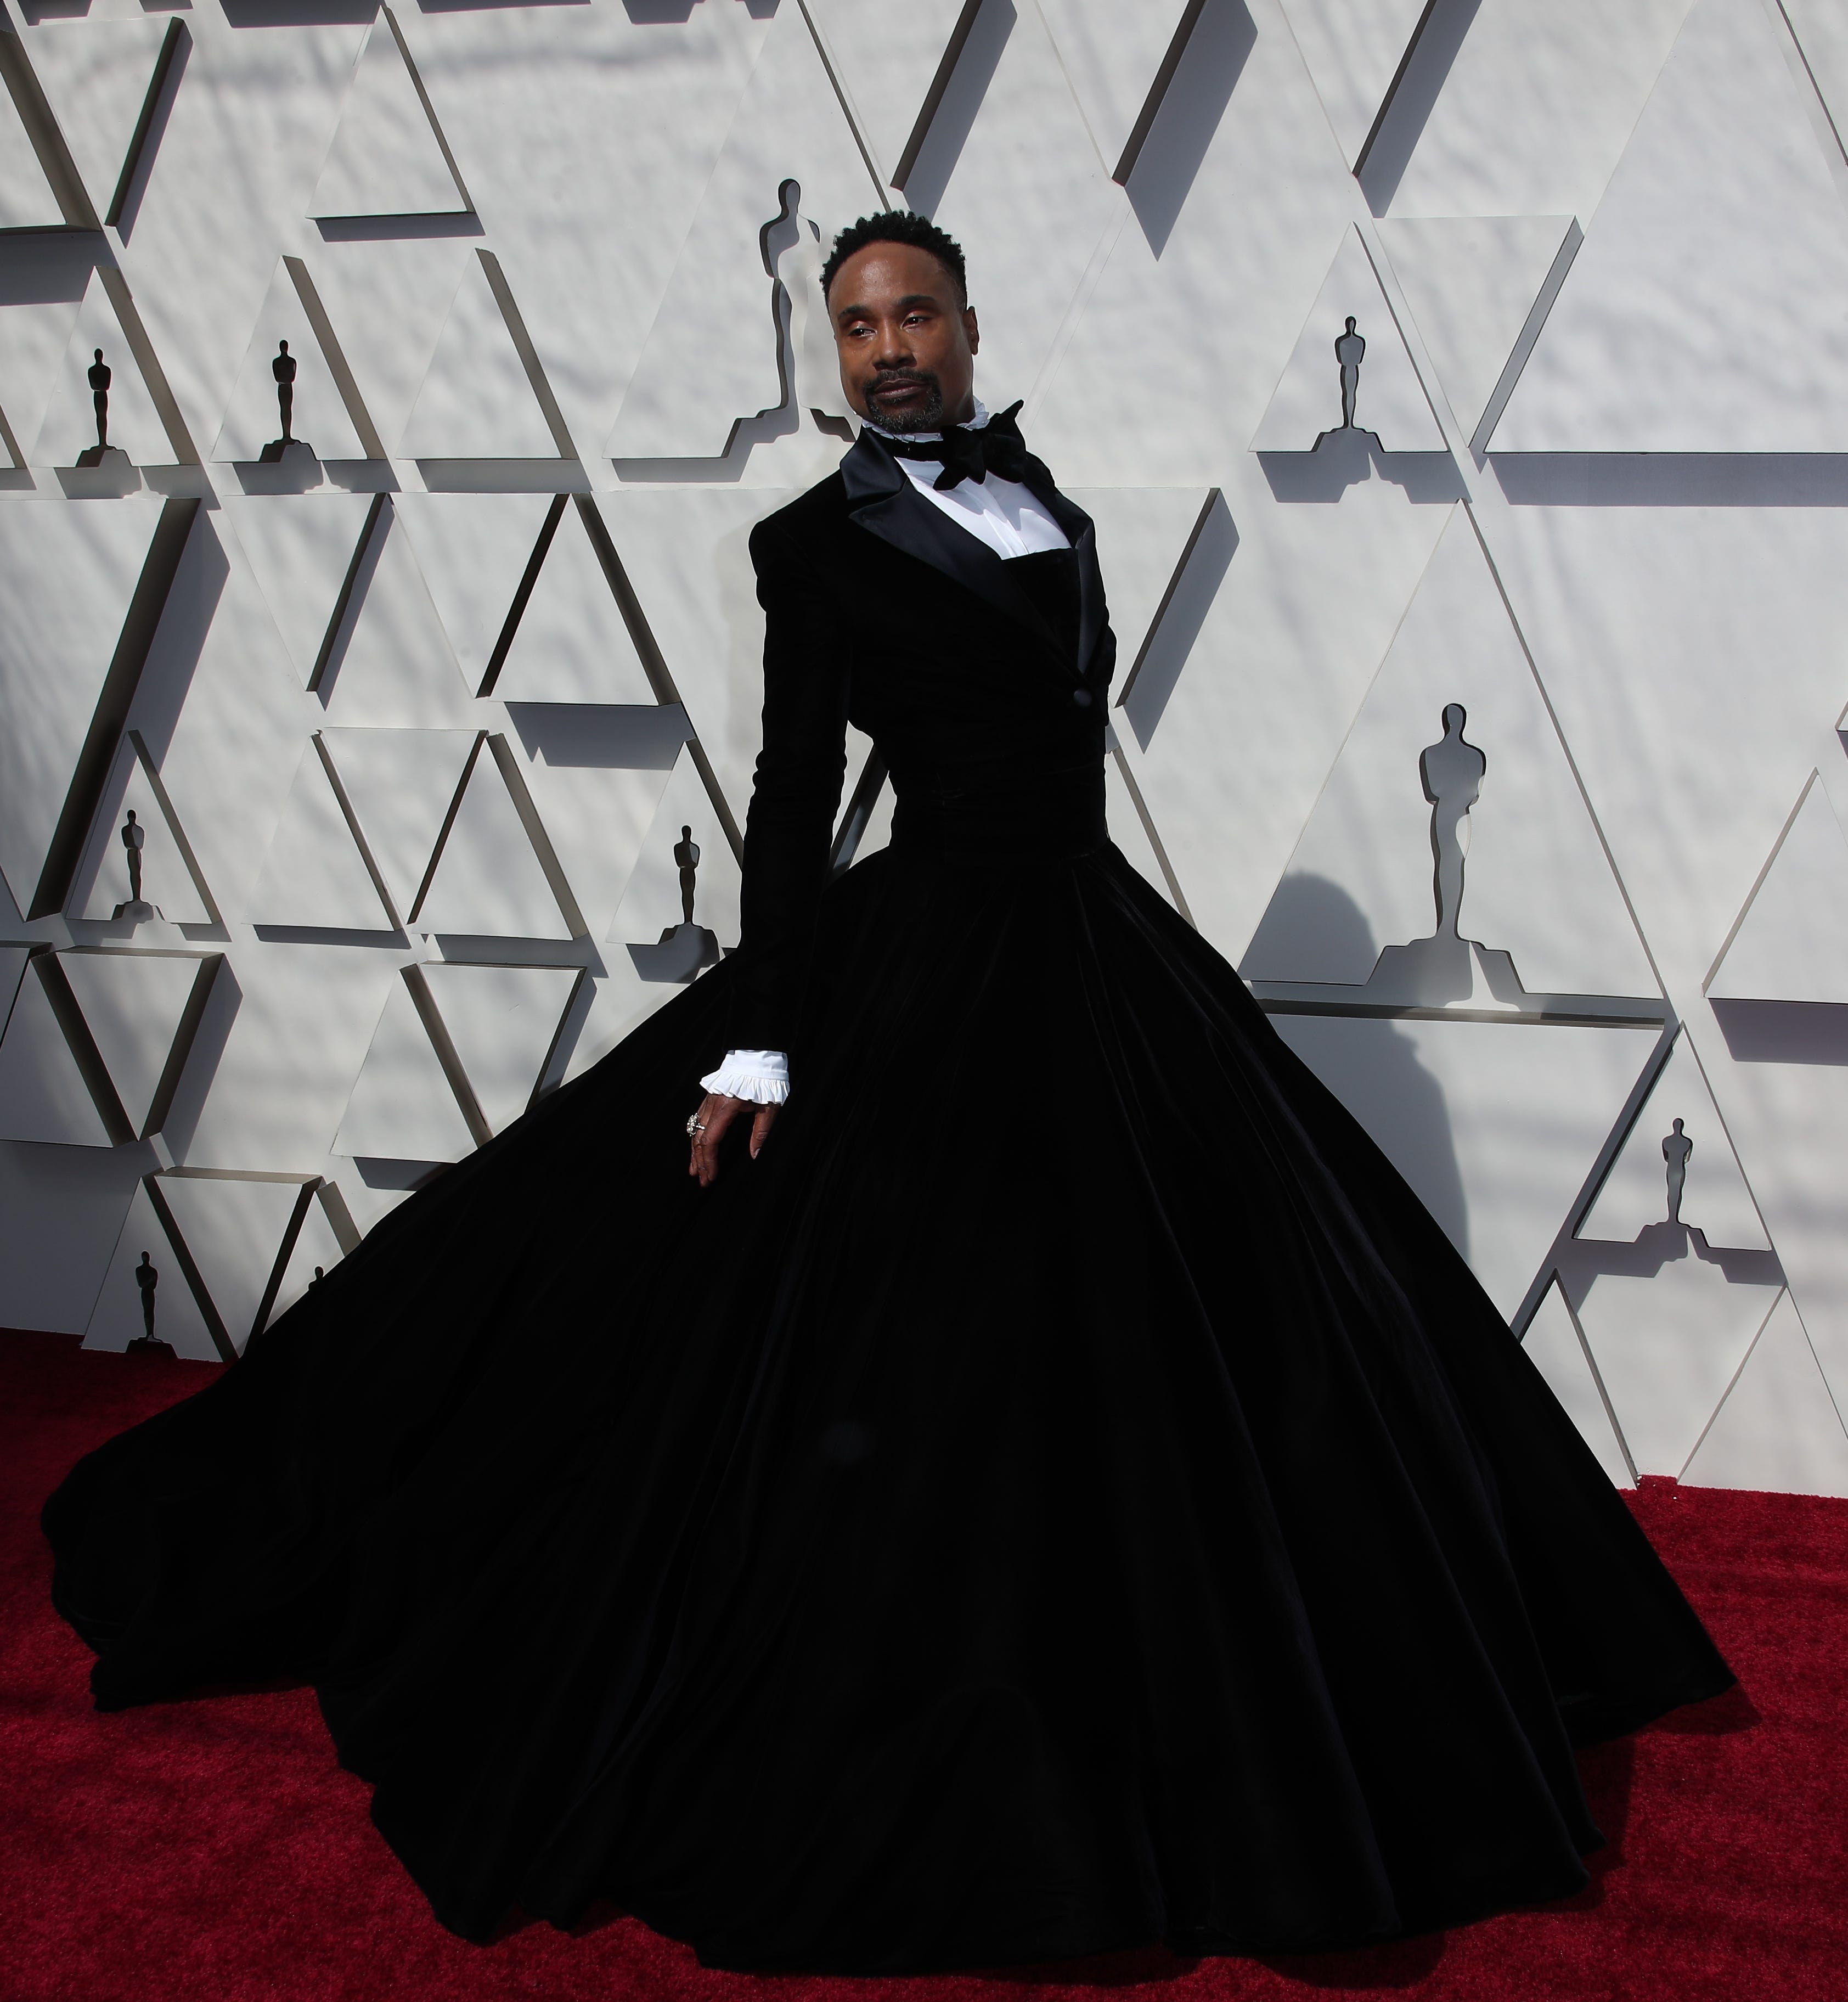 February 24, 2019; Los Angeles, CA, USA; Billy Porter arrives at the 91st Academy Awards at the Dolby Theatre. Mandatory Credit: Dan MacMedan-USA TODAY NETWORK (Via OlyDrop)